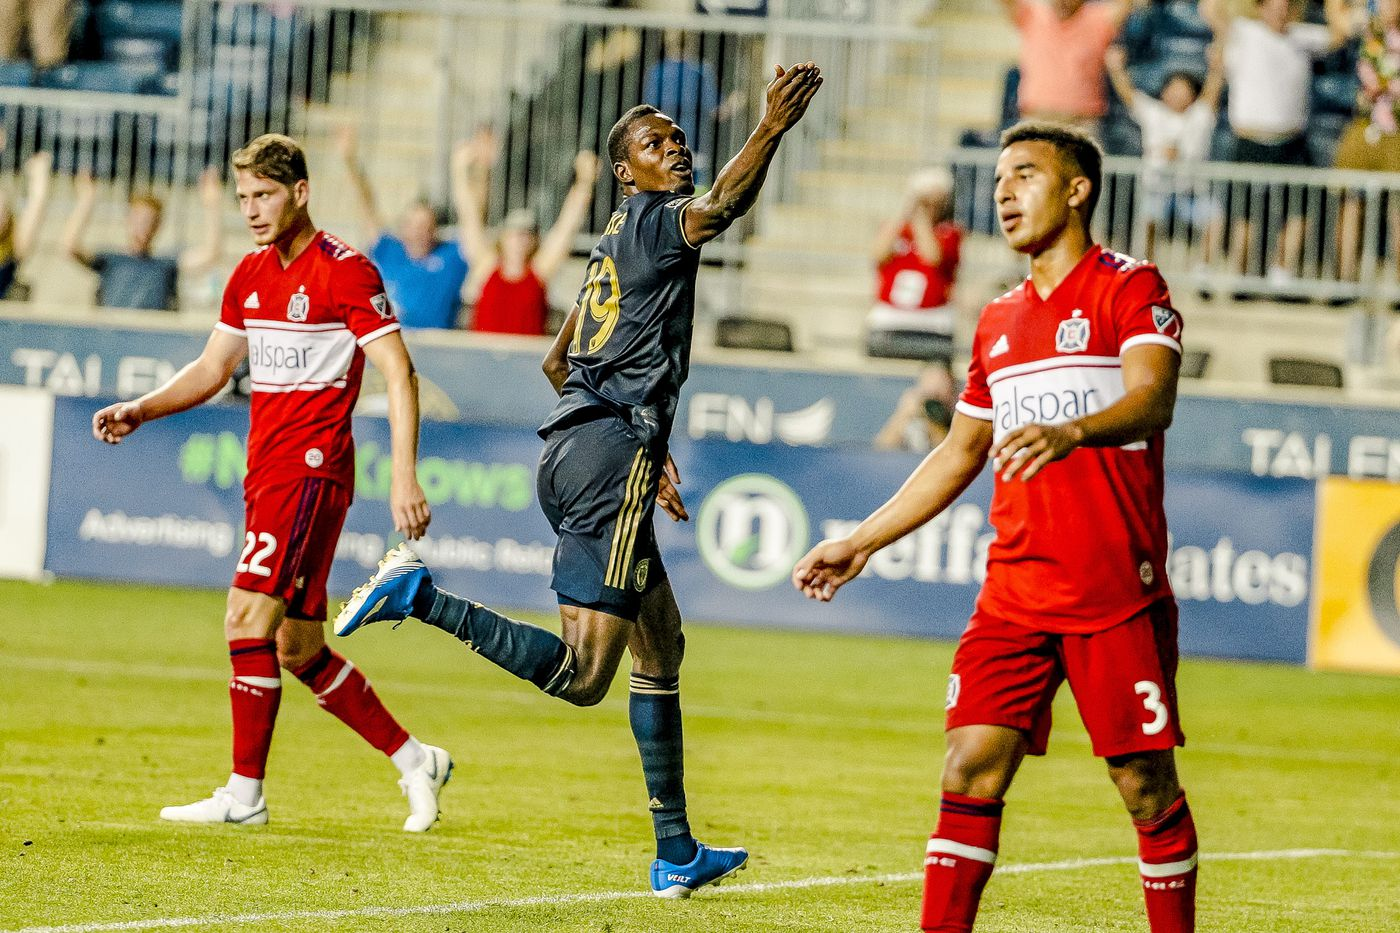 Union reach first U.S. Open Cup final in three years with 3-0 win over Chicago Fire